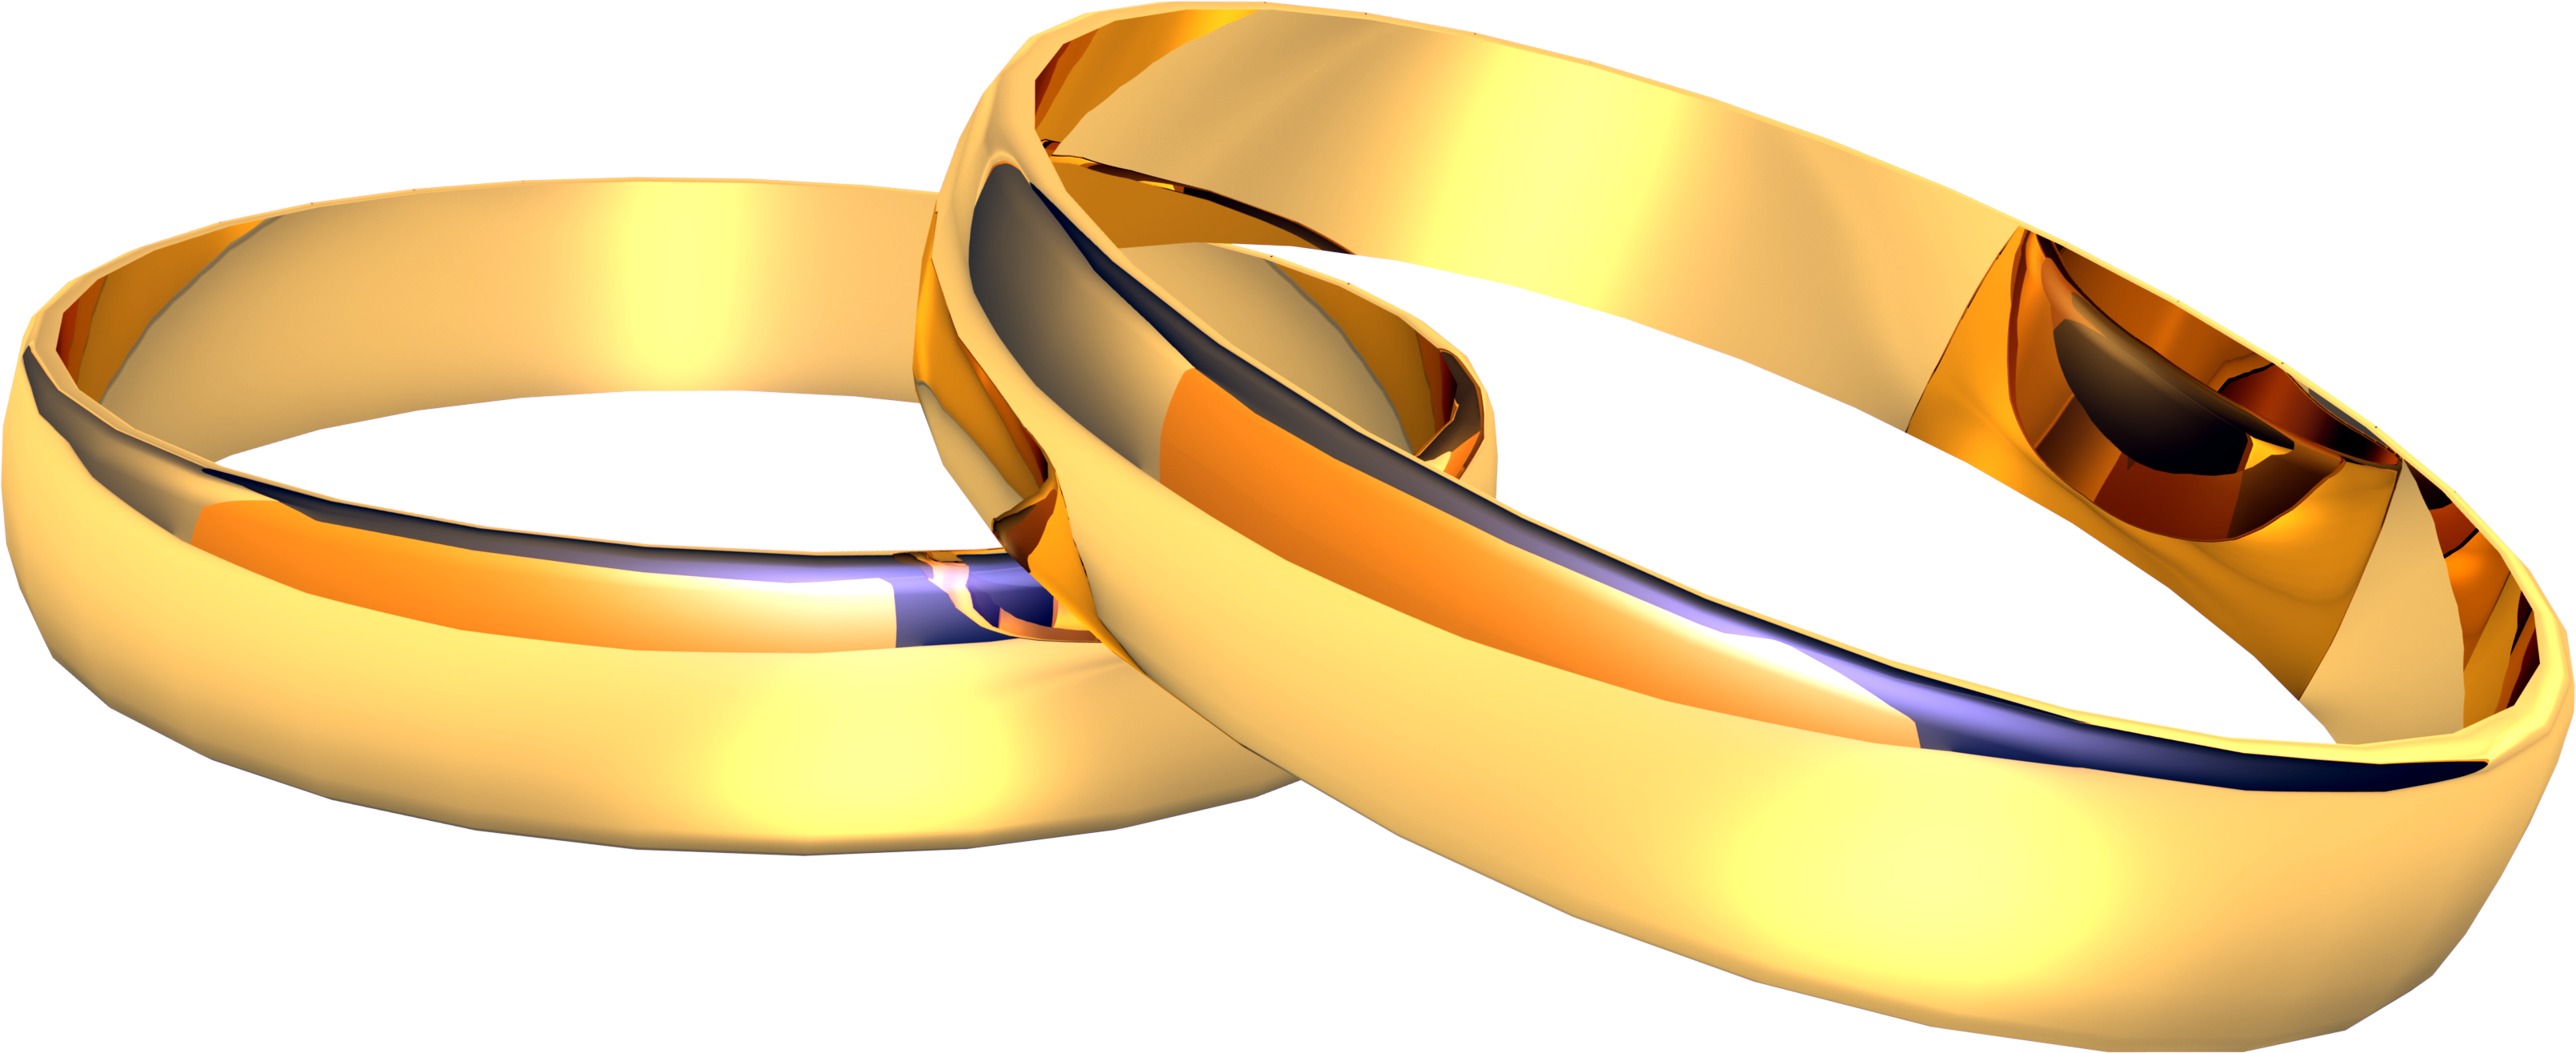 Gold, Love, Rings, Romance, Wedding Images